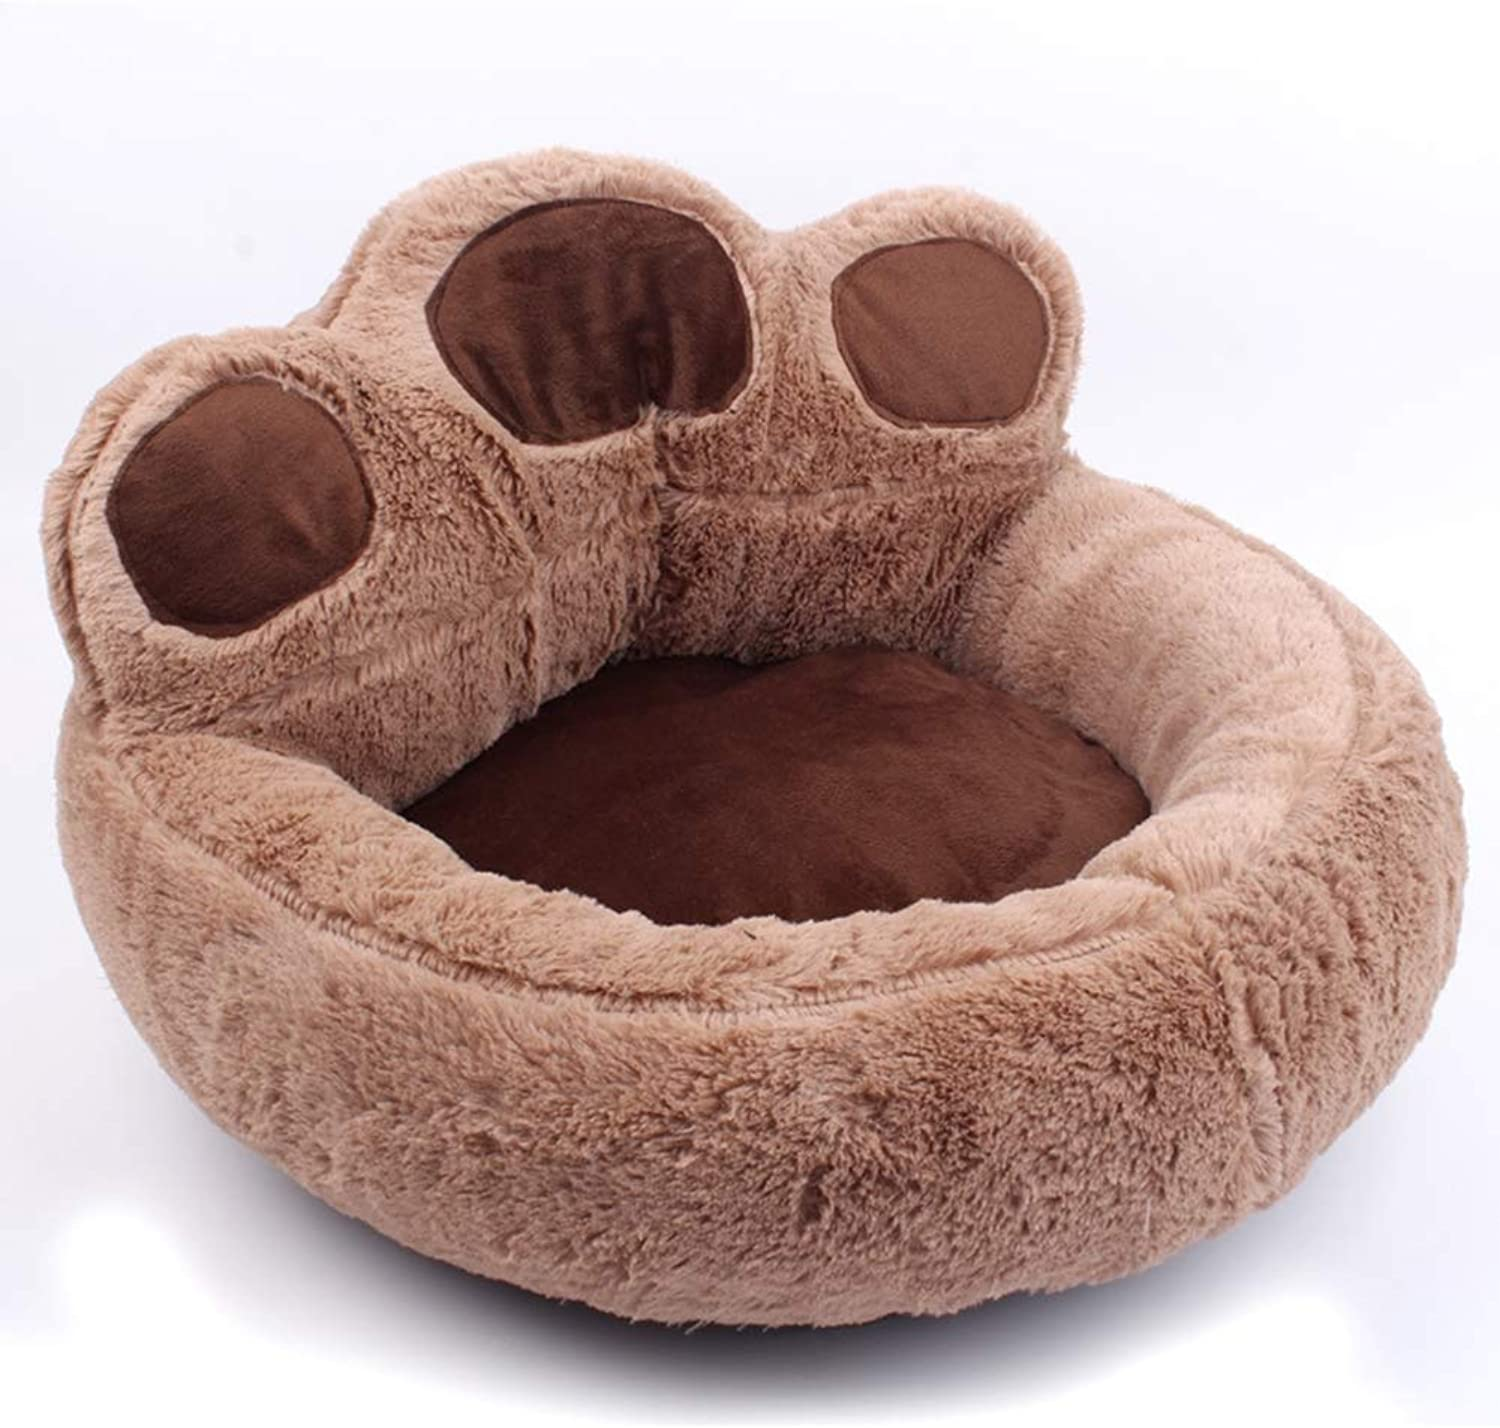 Kennel Cat Nest  Pet Supplies Autumn and winter bear paw pet dog pad,Brown,large